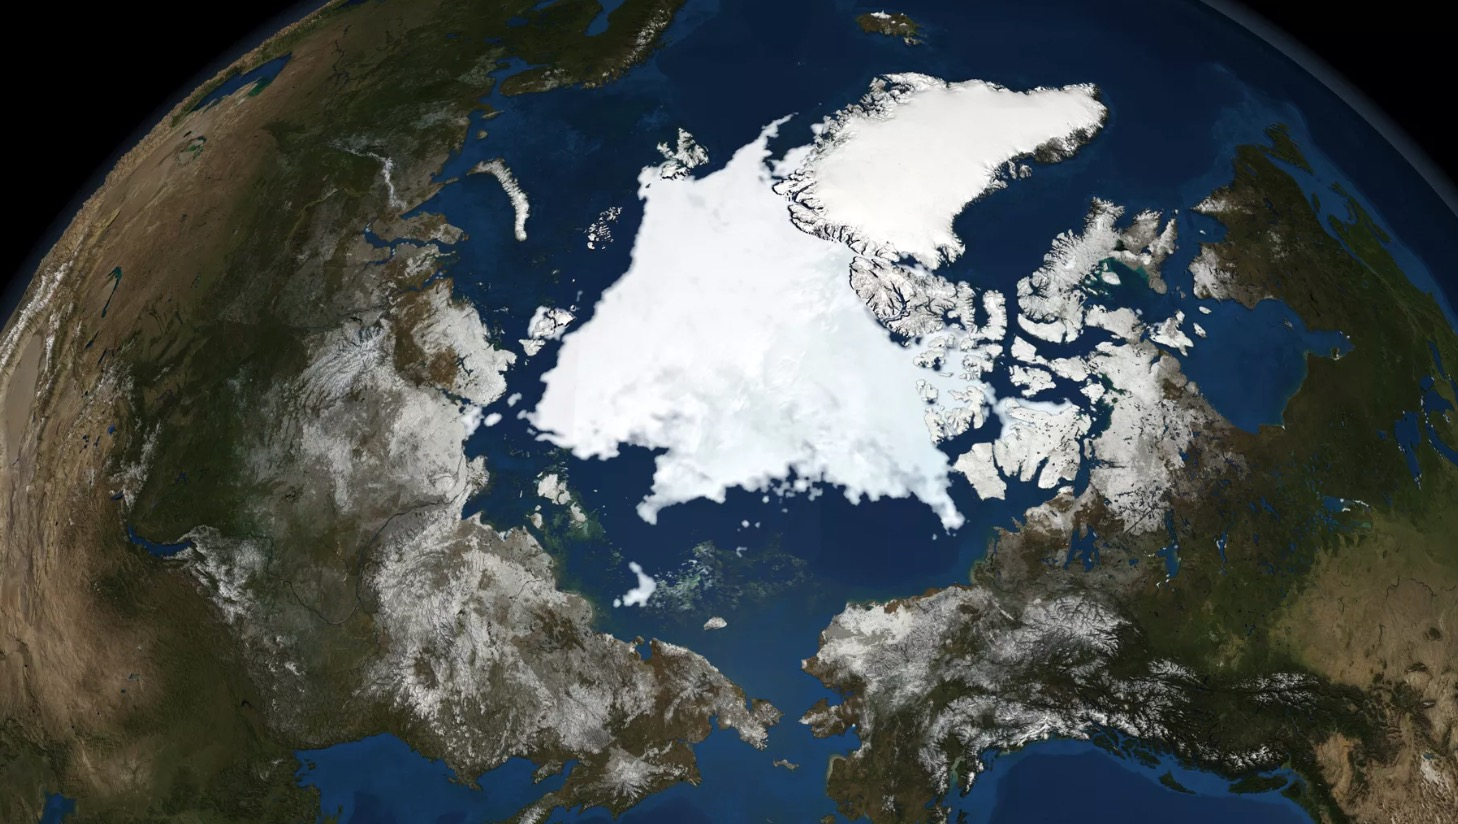 Scientists Feared Unstoppable Emissions From Melting Permafrost. They May Have Already Started